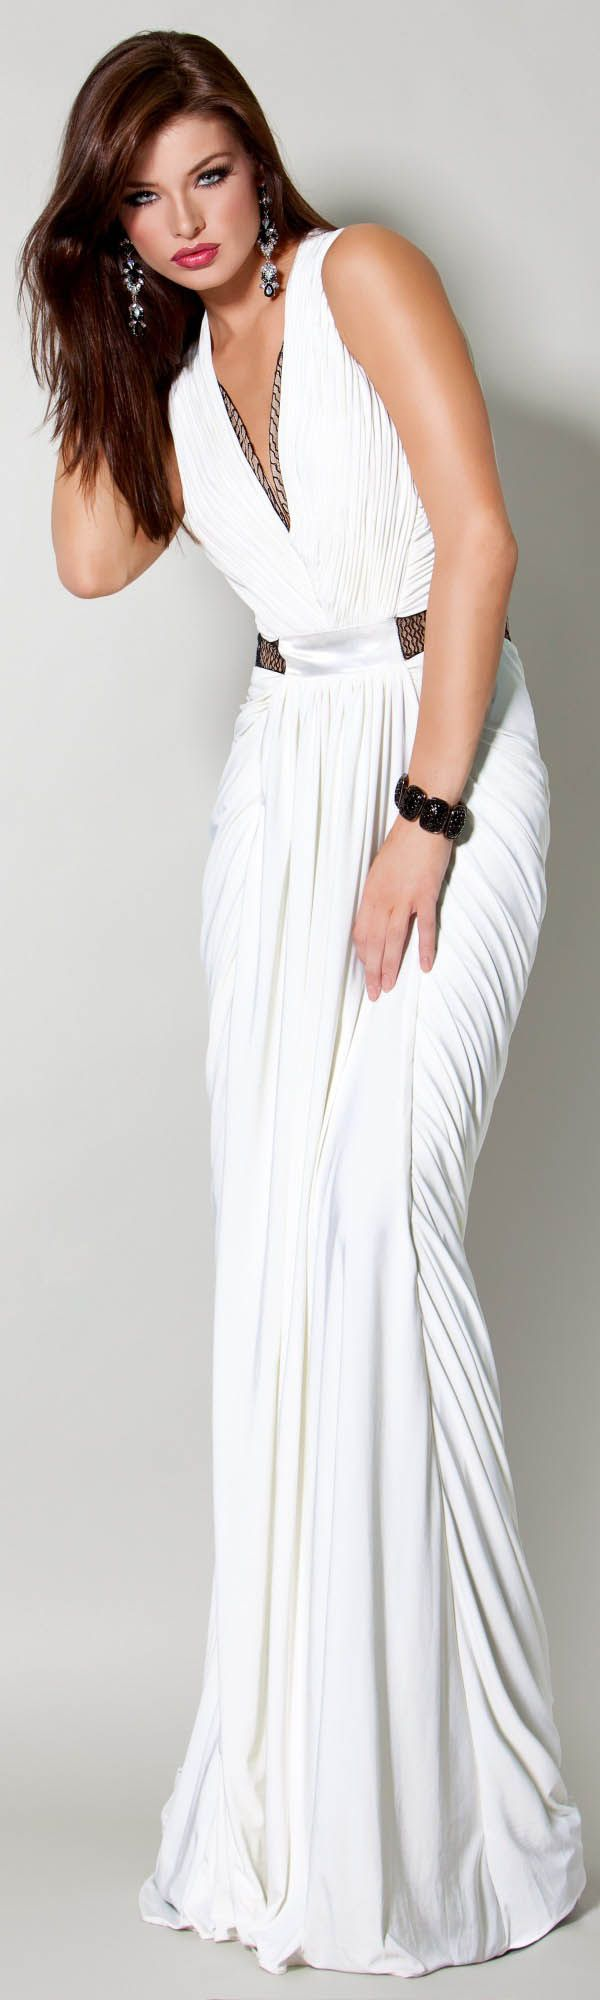 Jovani elegant evening dress im so fancy pinterest elegant